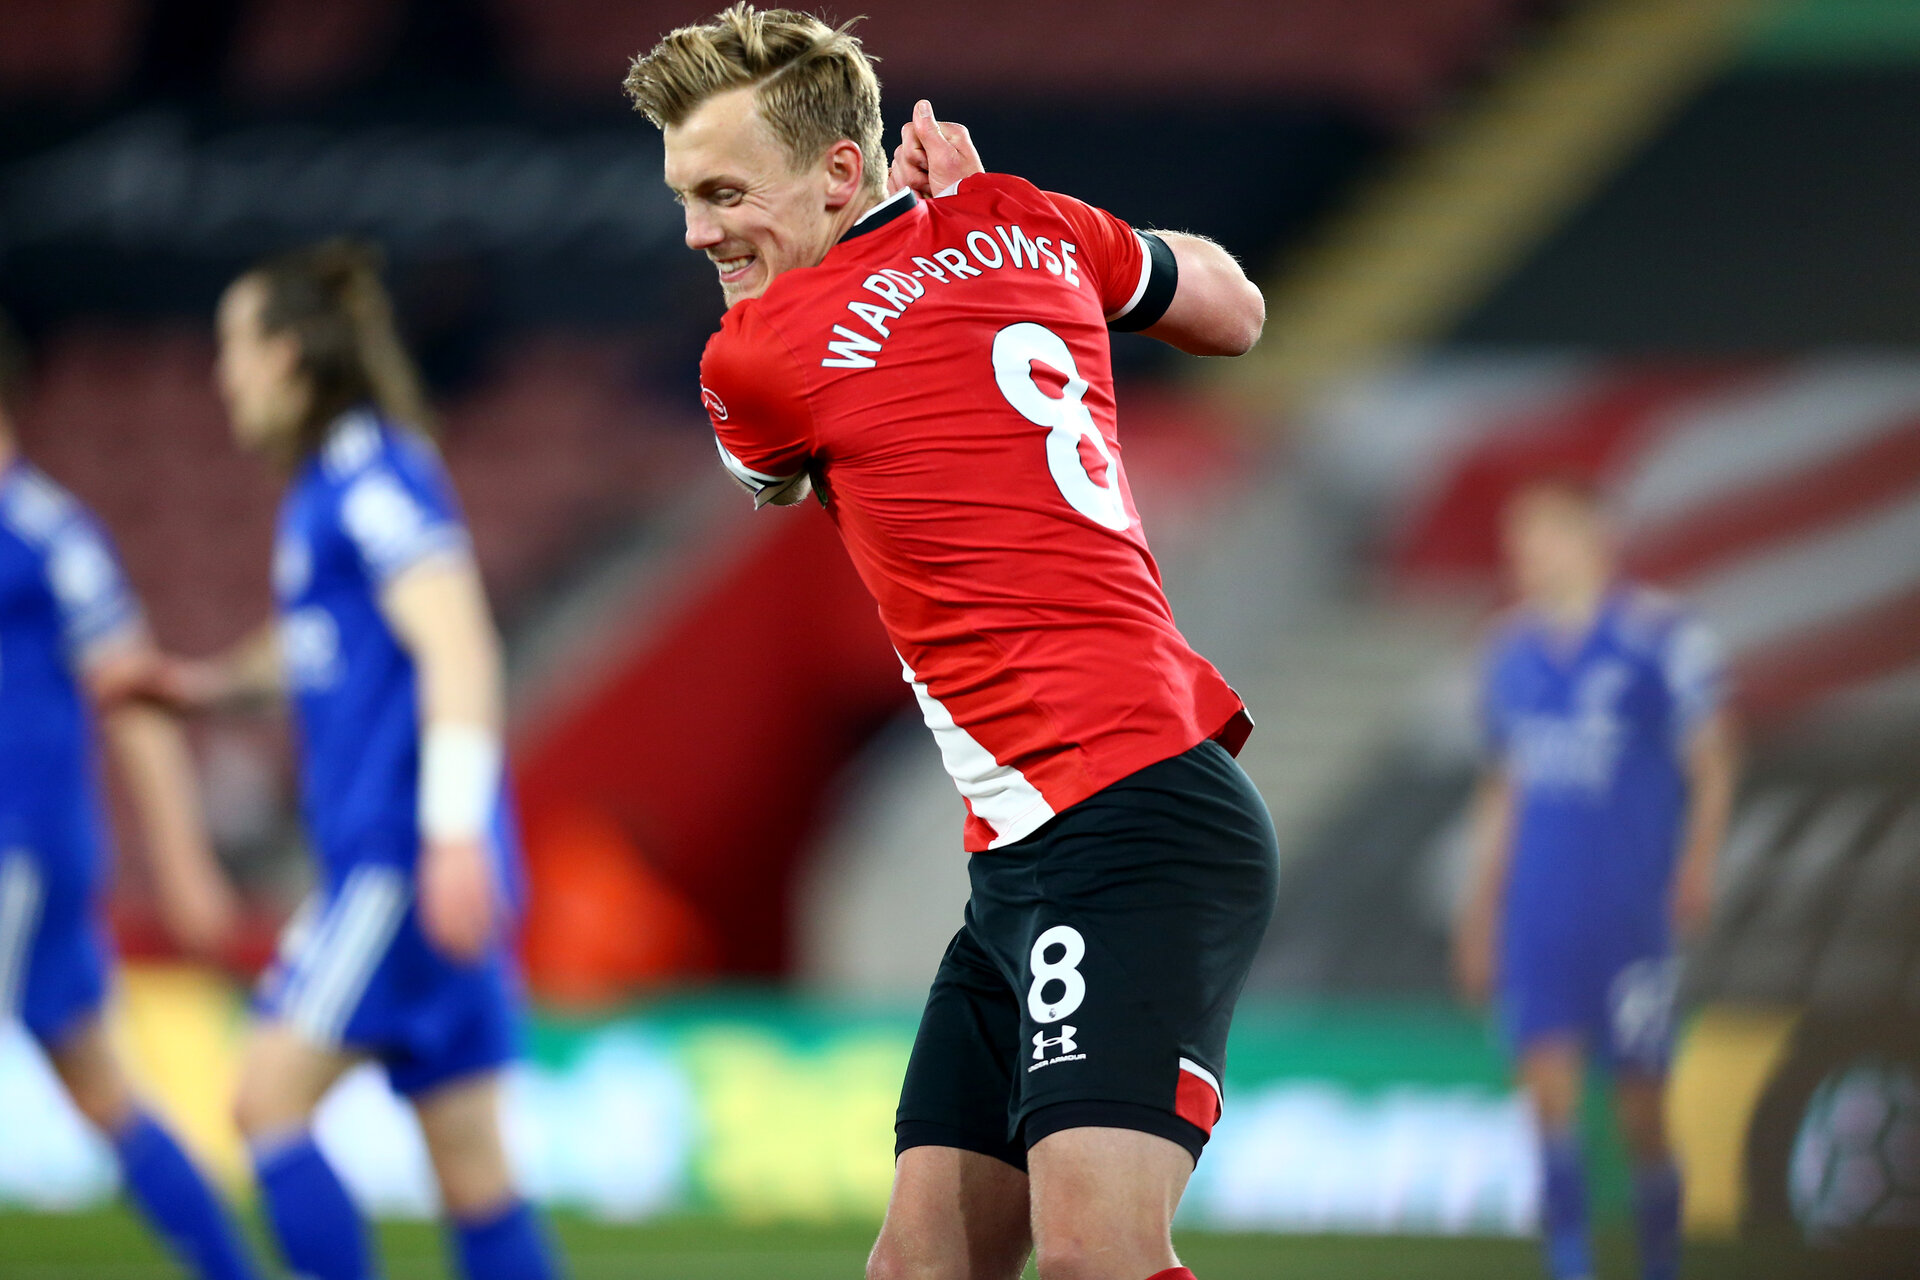 SOUTHAMPTON, ENGLAND - APRIL 30: James Ward-Prowse of Southampton goal celebration during the Premier League match between Southampton and Leicester City at St Mary's Stadium on April 30, 2021 in Southampton, England. Sporting stadiums around the UK remain under strict restrictions due to the Coronavirus Pandemic as Government social distancing laws prohibit fans inside venues resulting in games being played behind closed doors.  (Photo by Isabelle Field/Southampton FC via Getty Images)